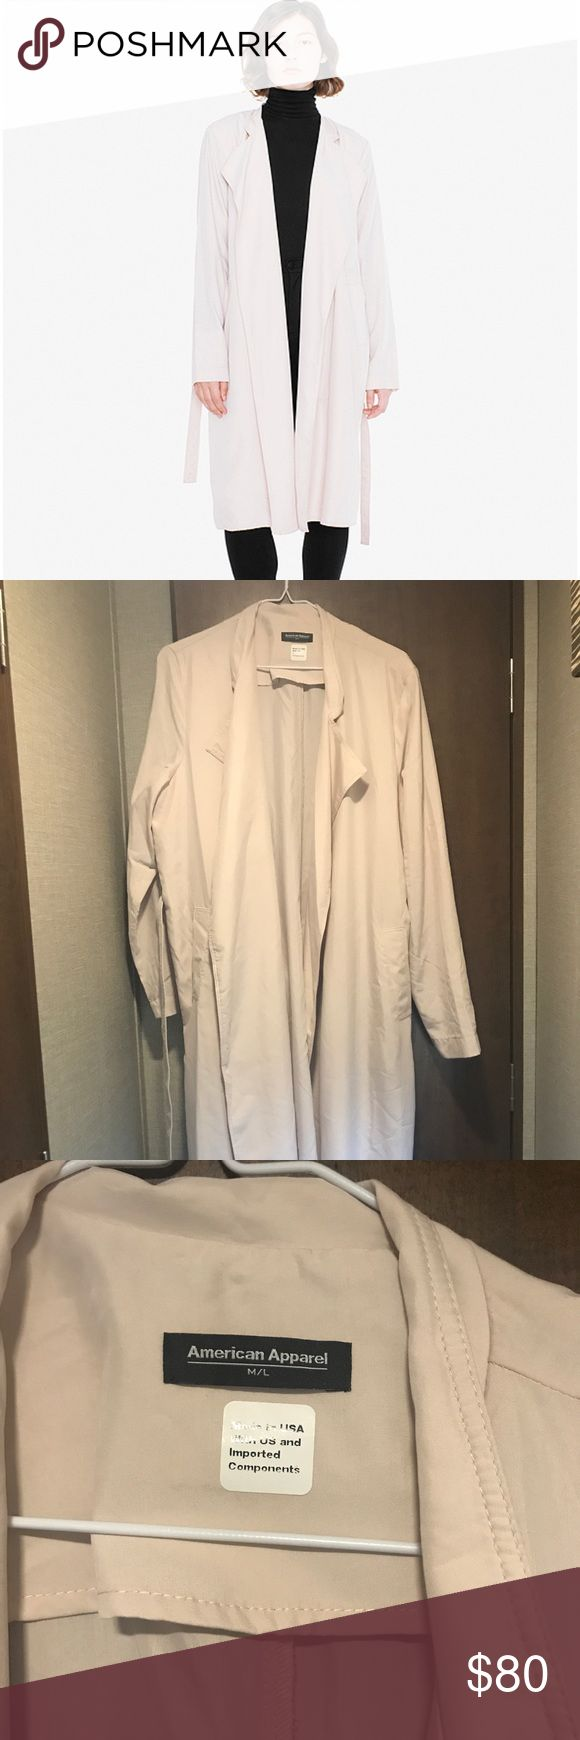 American Apparel Lightweight Trench Coat Beautiful trendy American Apparel light pink coat! Size M/L. Loose fit💕 American Apparel Jackets & Coats Trench Coats